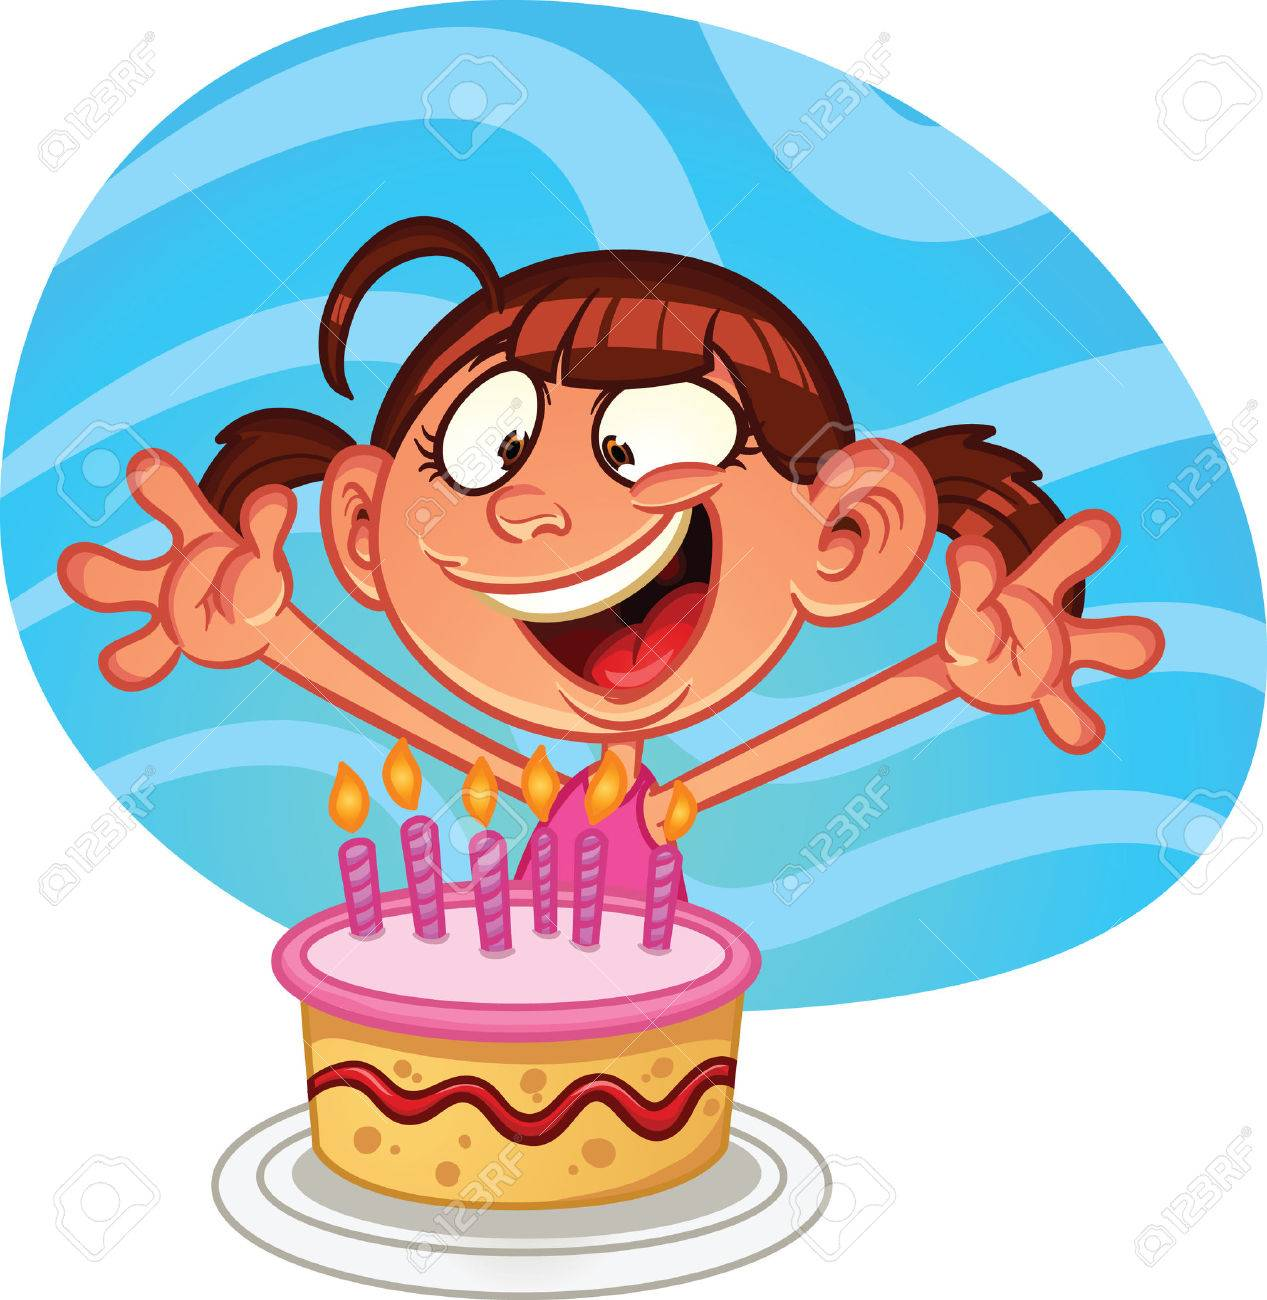 Cartoon Girl With Birthday Cake Vector Clip Art Illustration Simple Gradients And Background On